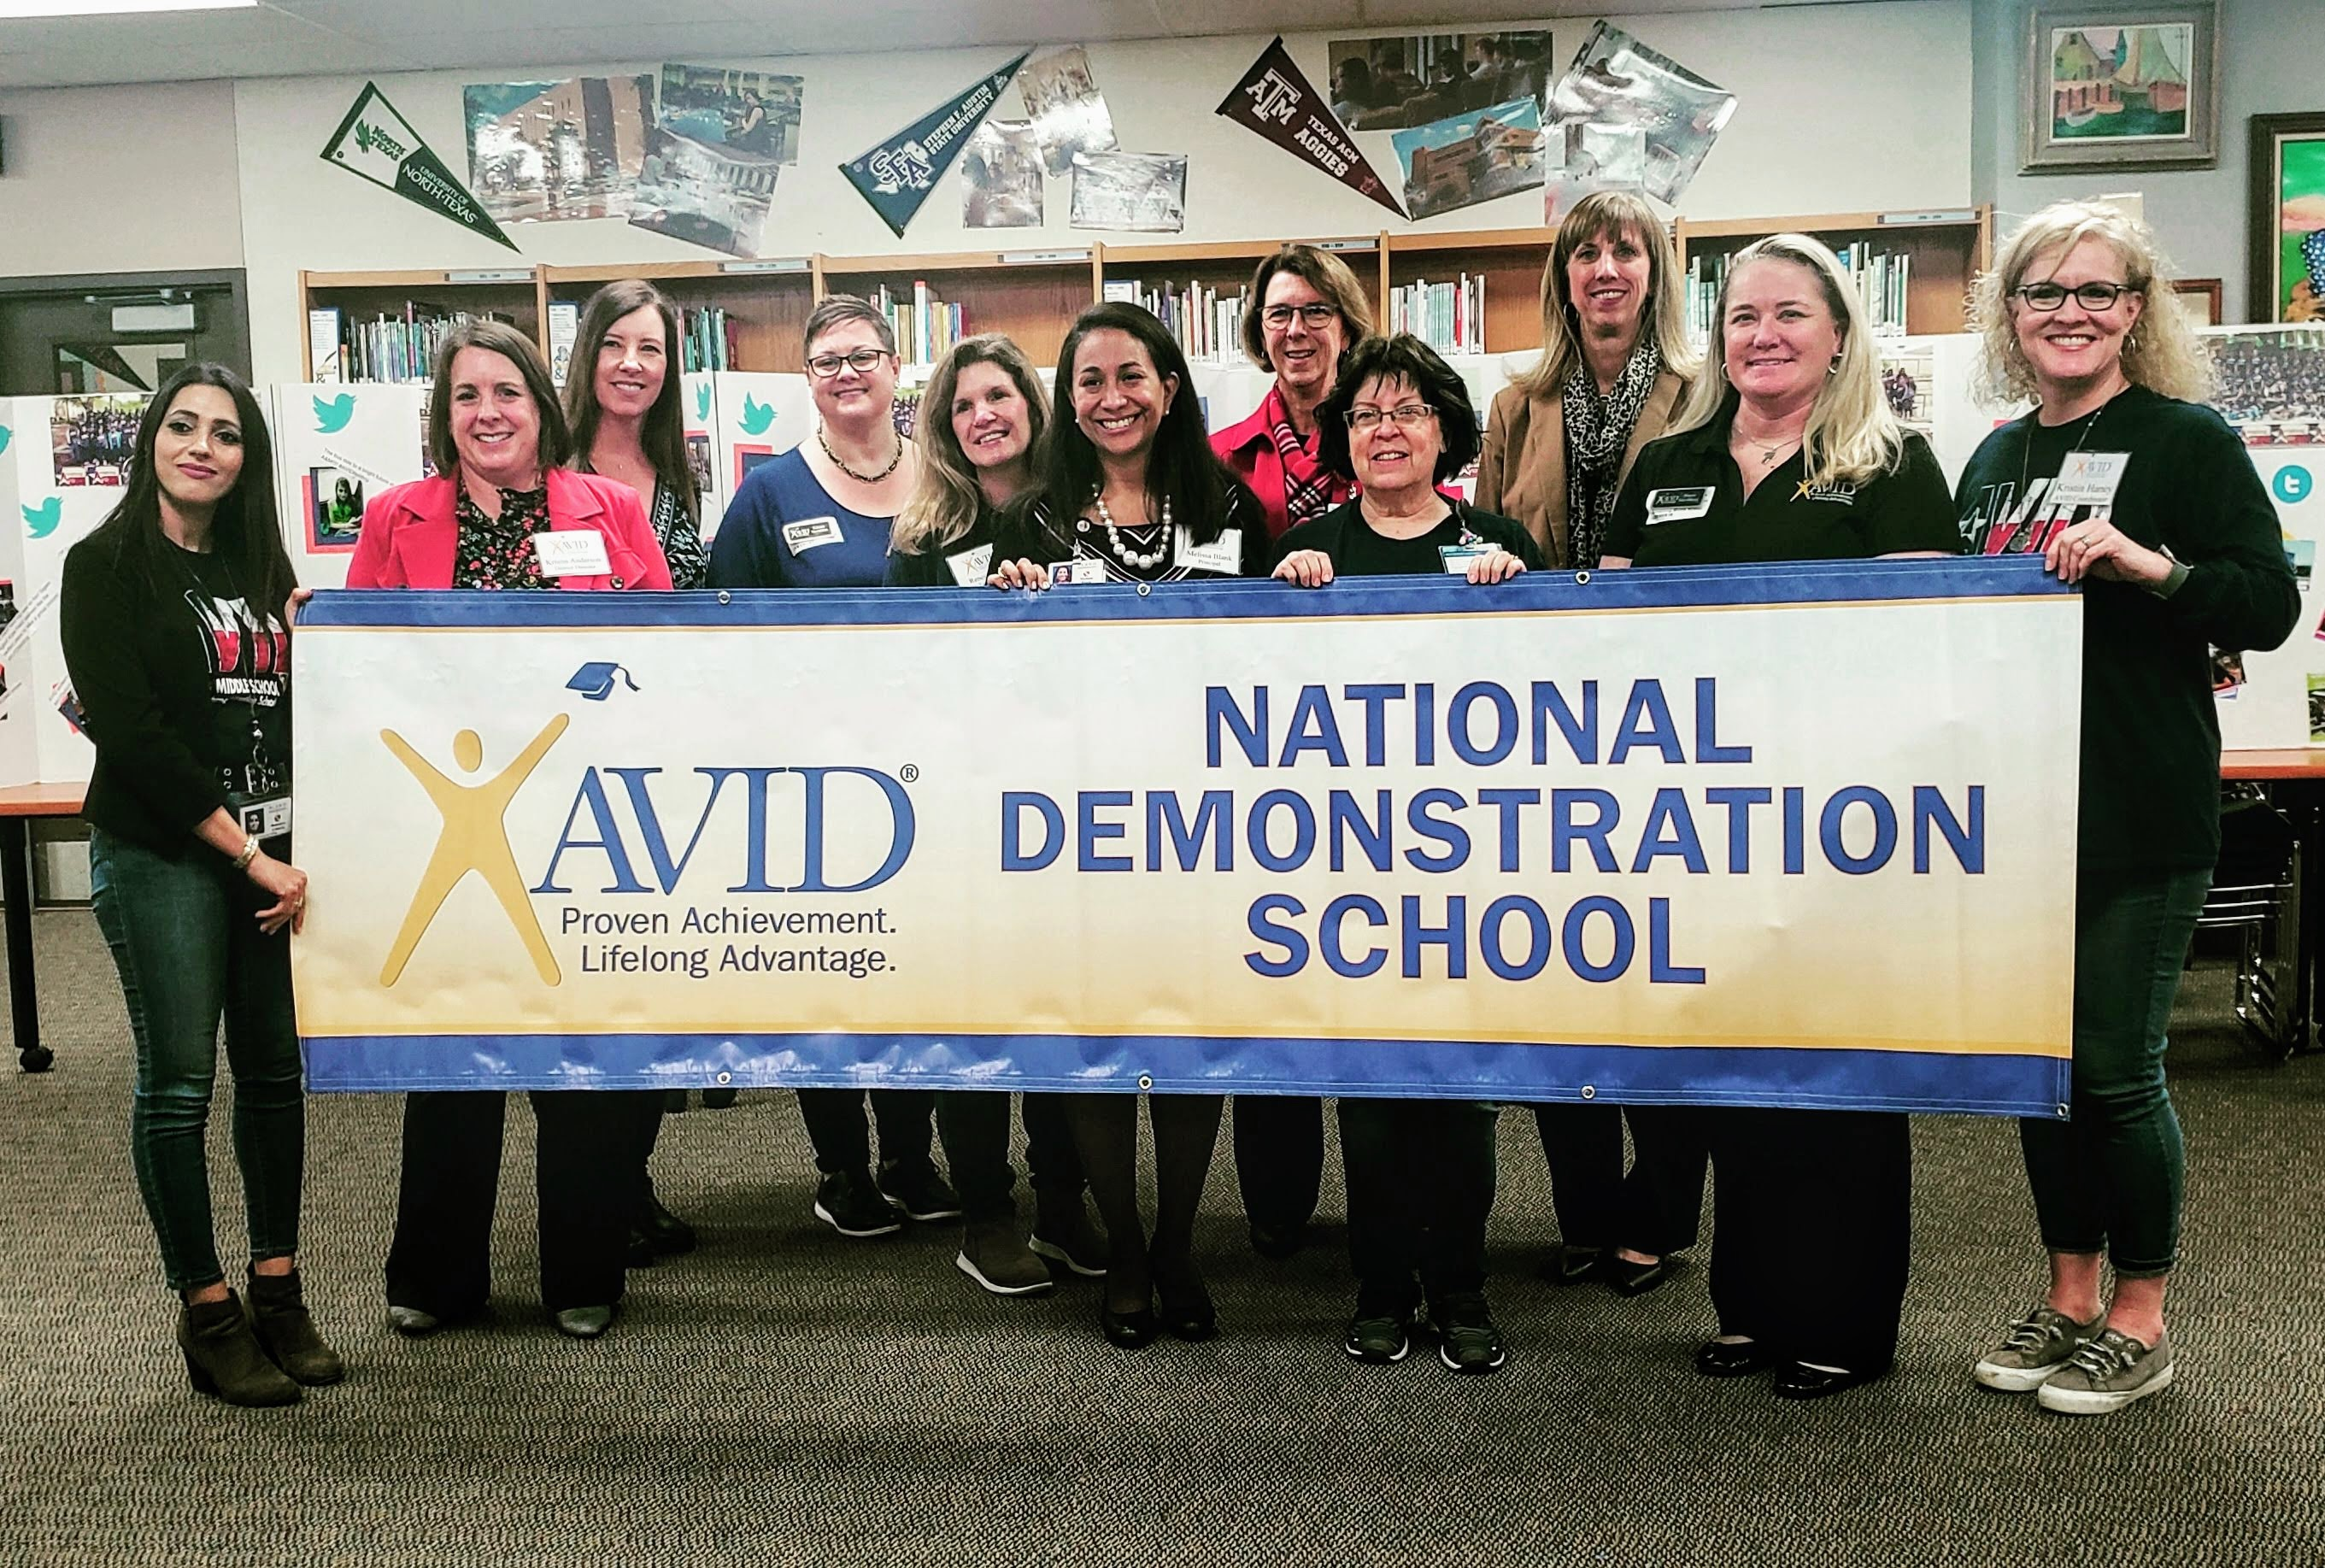 Armstrong staff holding AVID National Demonstration School banner